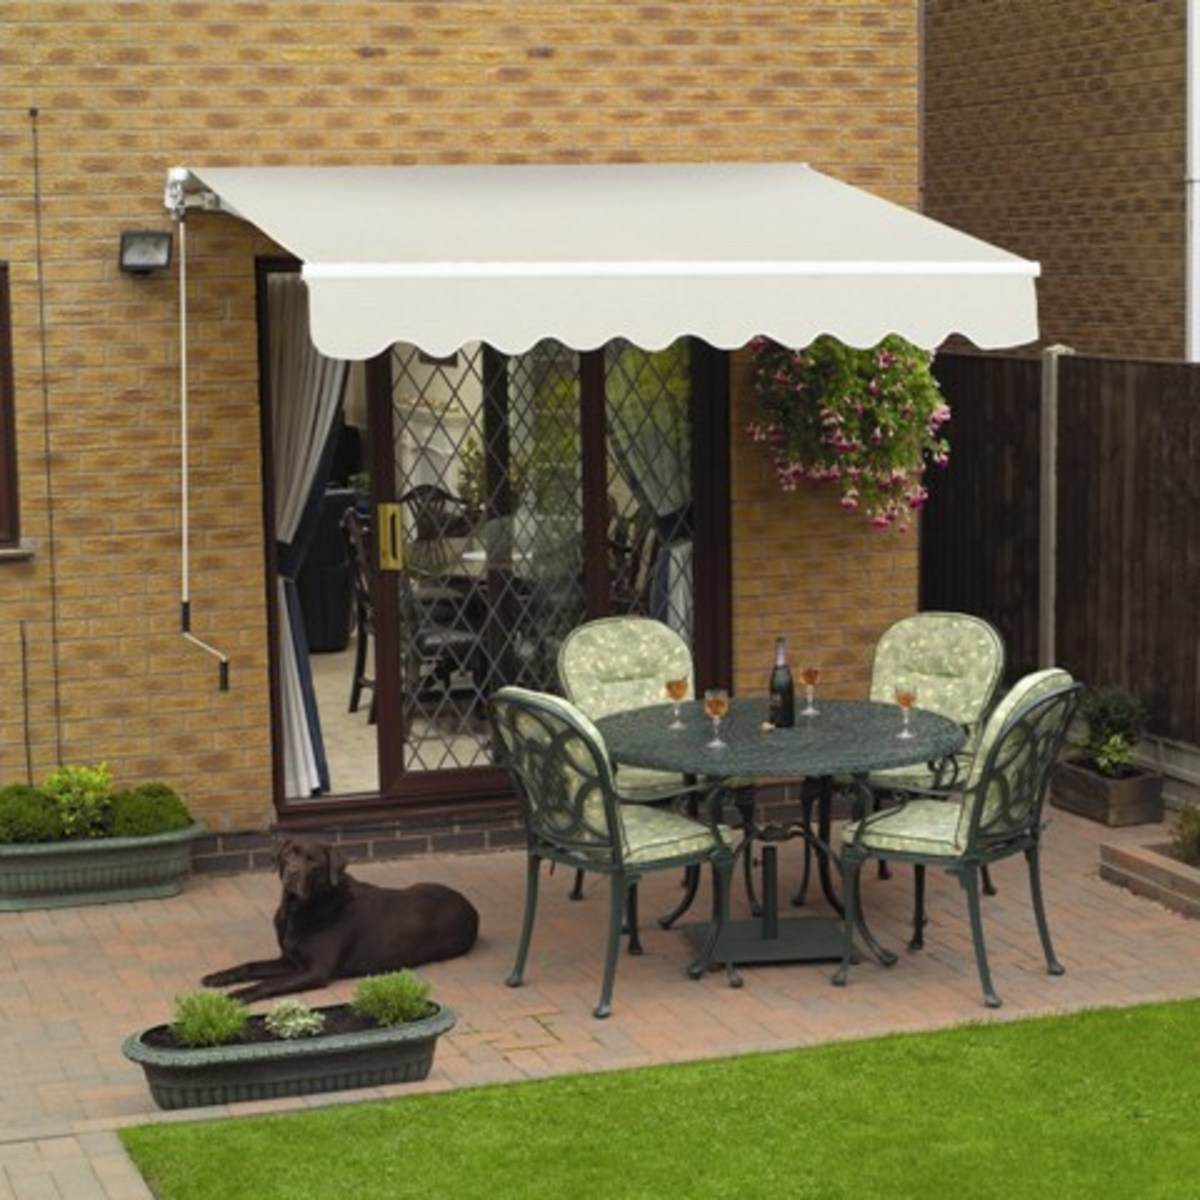 Patio Shades - Canopy Overheads, Roofs, and Other Covers